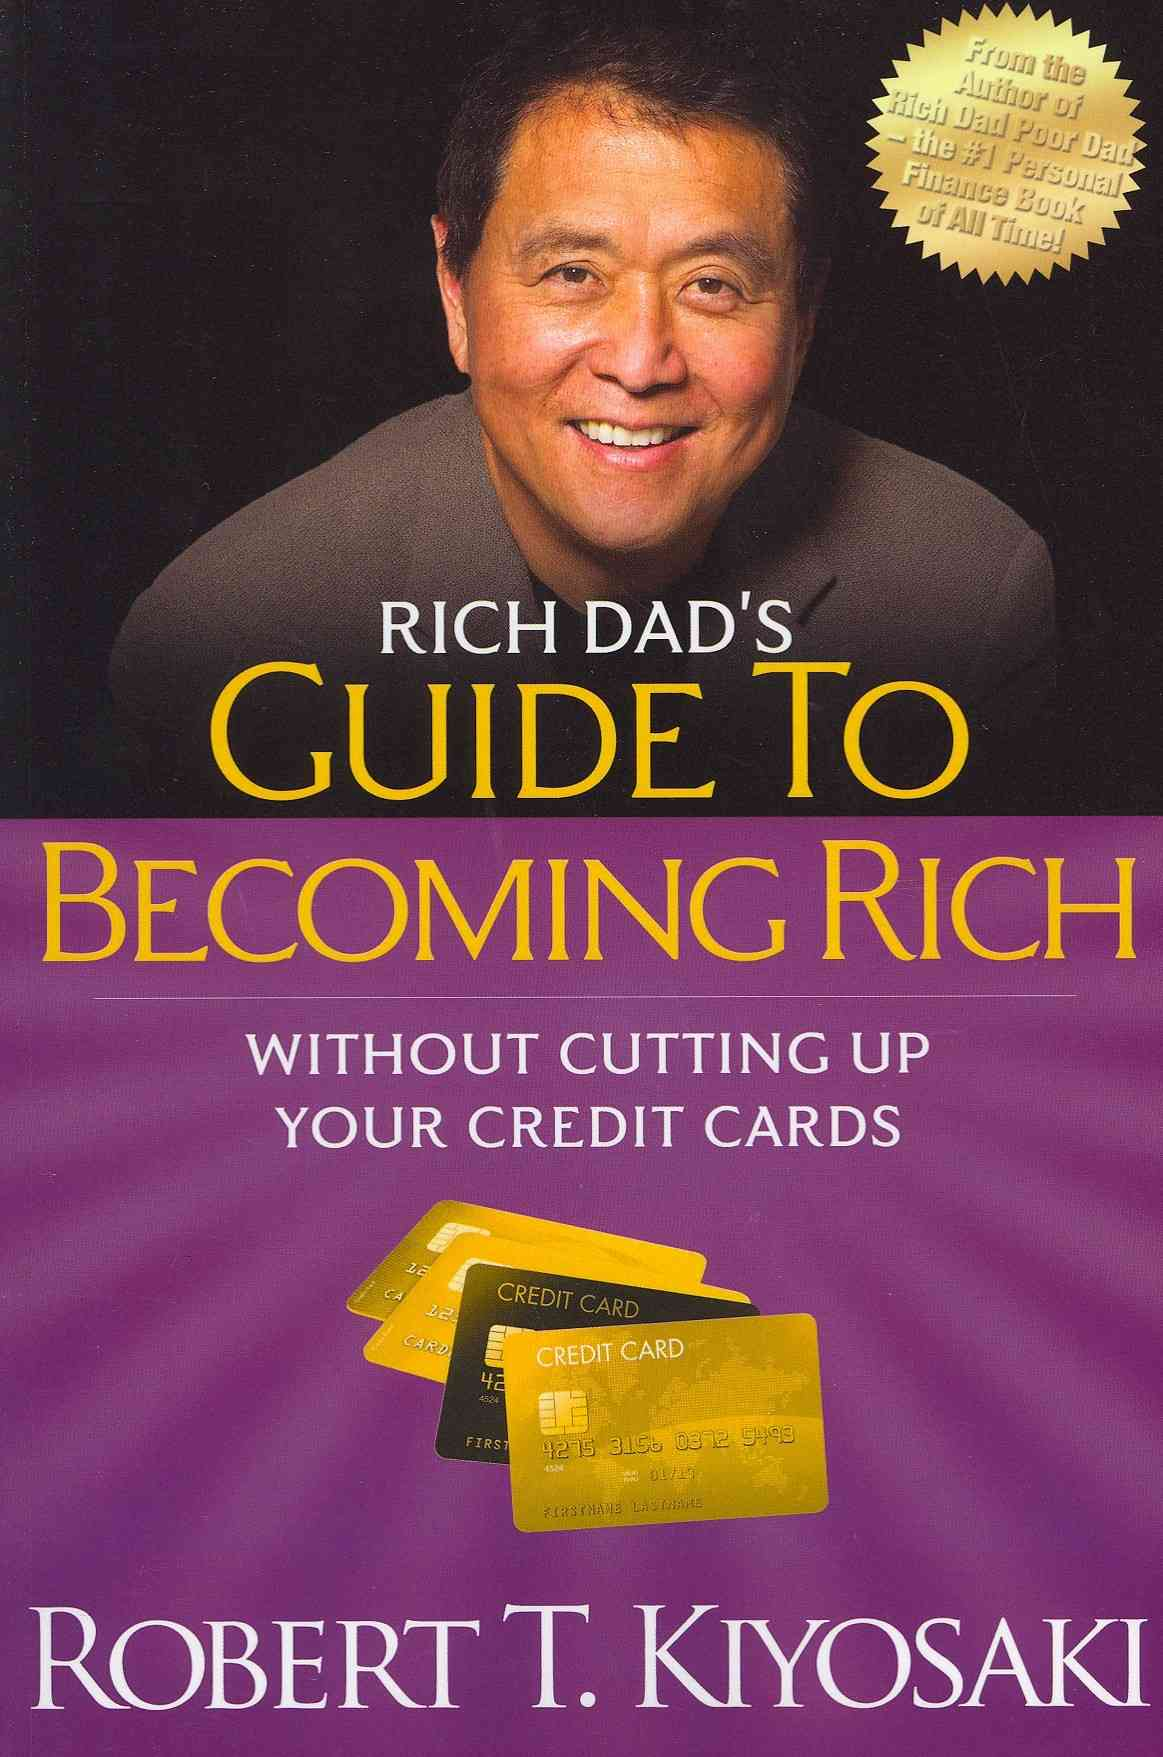 Rich Dad's Guide to Becoming Rich Without Cutting Up Your Credit Cards By Kiyosaki, Robert T.